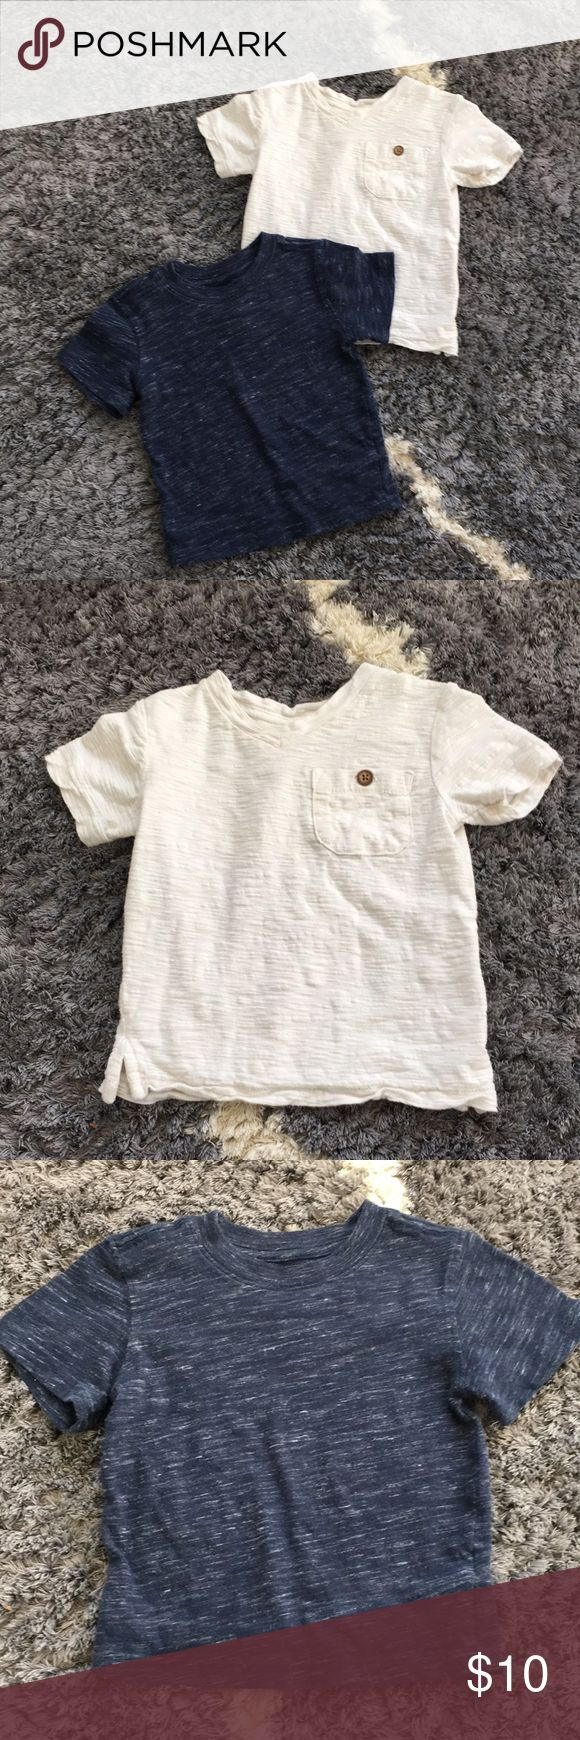 Heathered dress shirts Perfect condition! Navy is Cherokee brand and white is baby gap GAP Shirts & Tops Tees - Short Sleeve